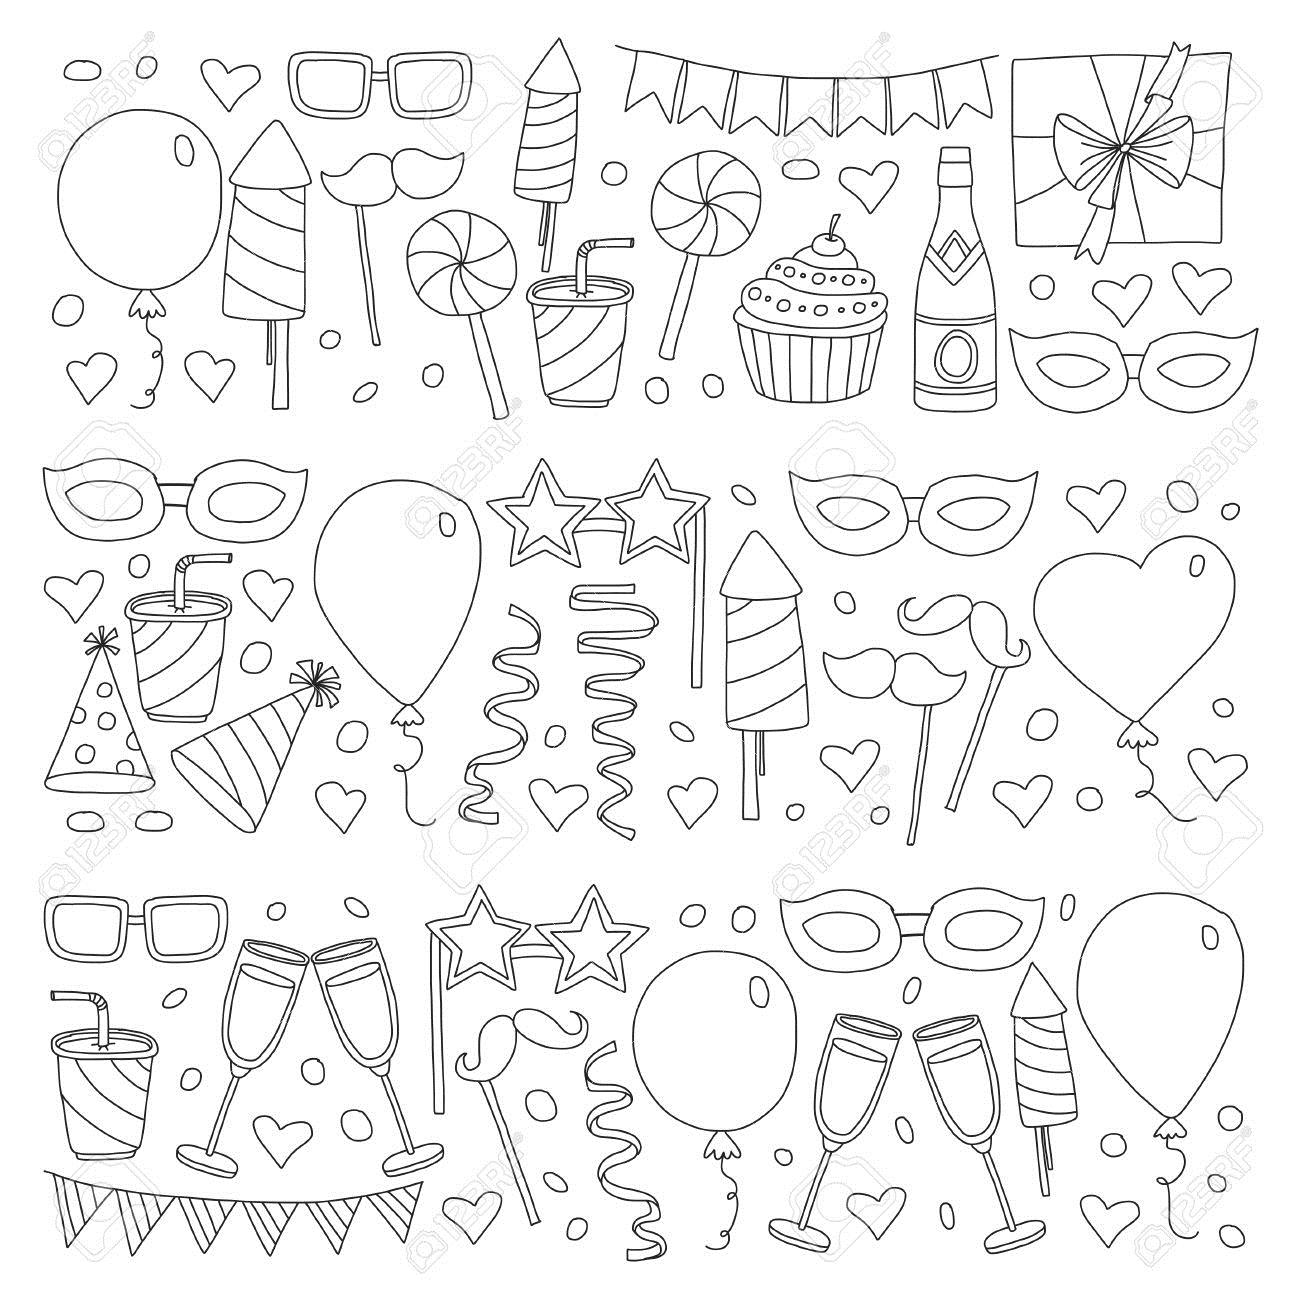 birthday party drawing pictures ; 85817778-set-of-birthday-party-design-elements-kids-drawing-doodle-icons-colorful-balloons-flags-confetti-cup